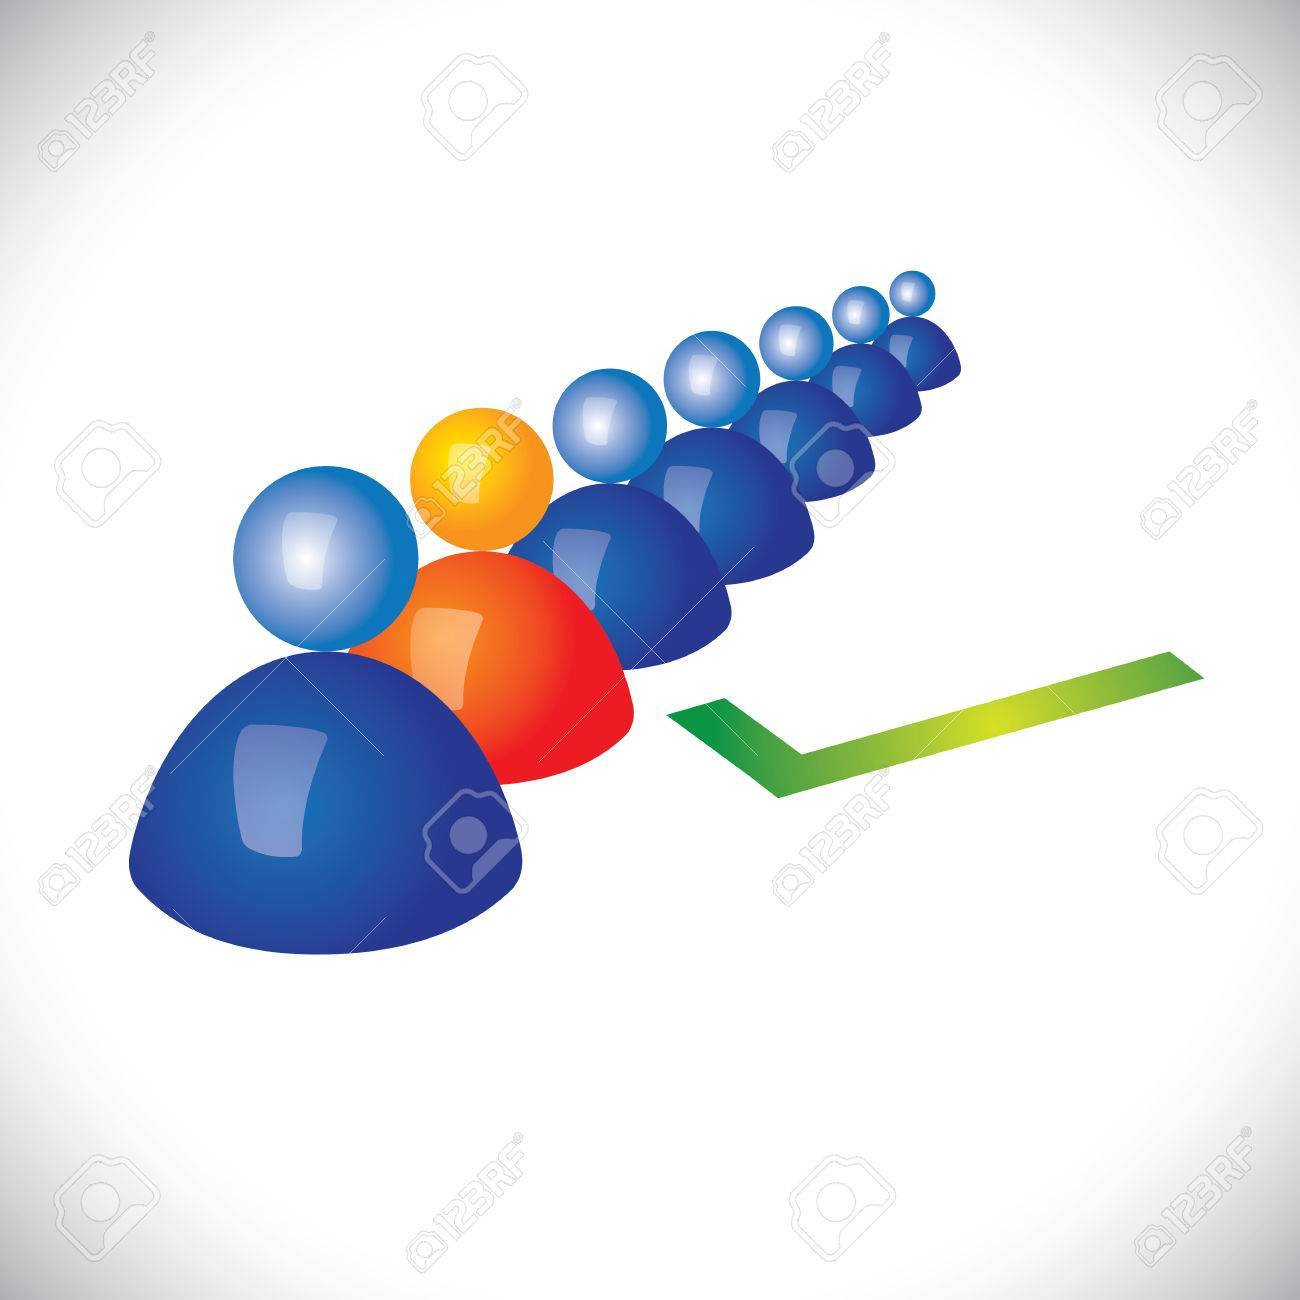 concept of selecting or hiring right staff, worker or employee. Stock Vector - 22242125